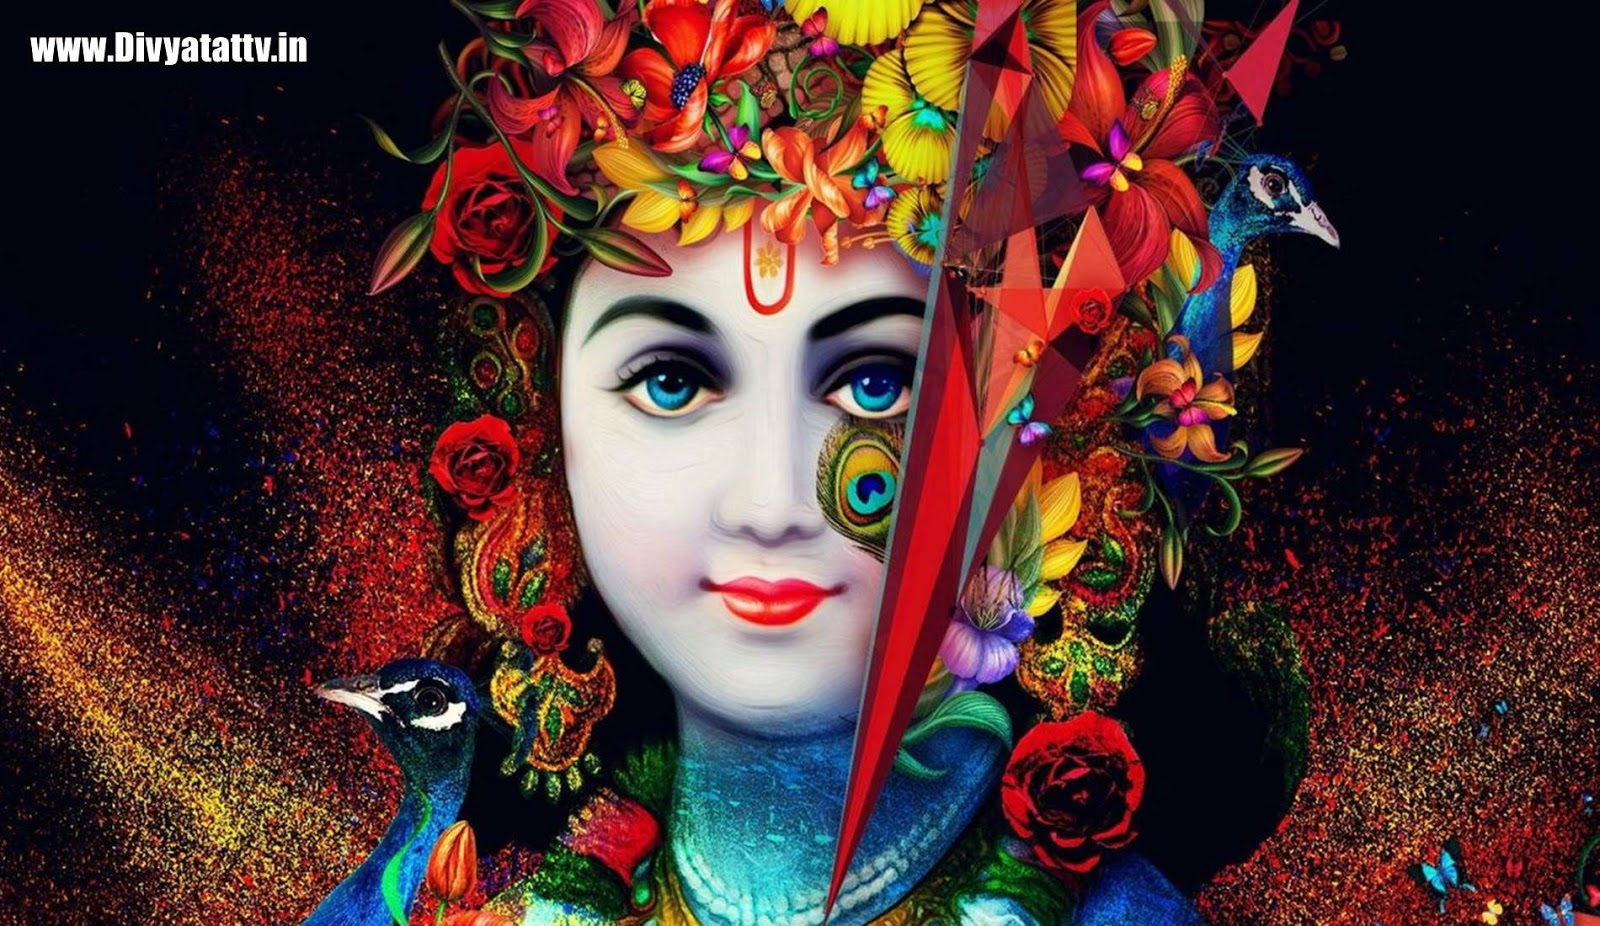 3d images of lord krishna and radha wwwpixsharkcom